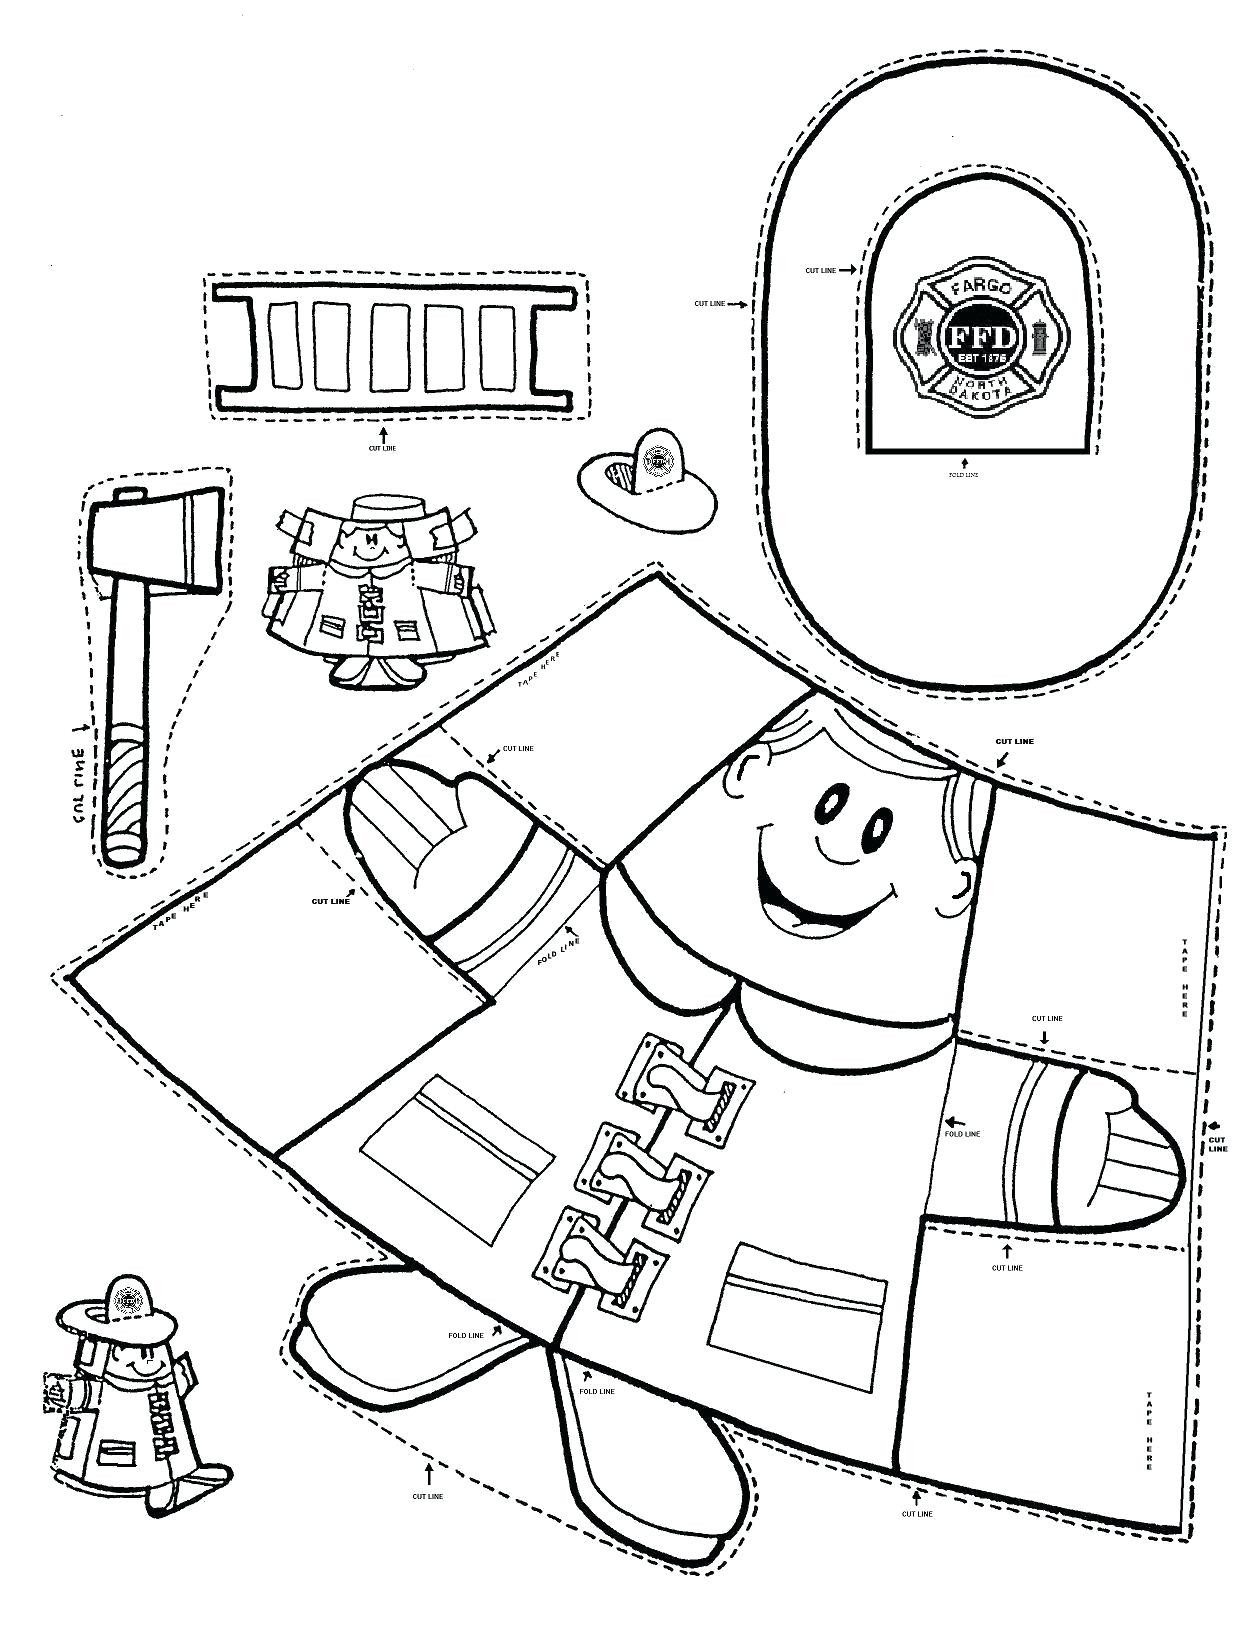 Free Printable Fire Safety Worksheets Coloring Fire Safety Coloringges Free Printable Preschool